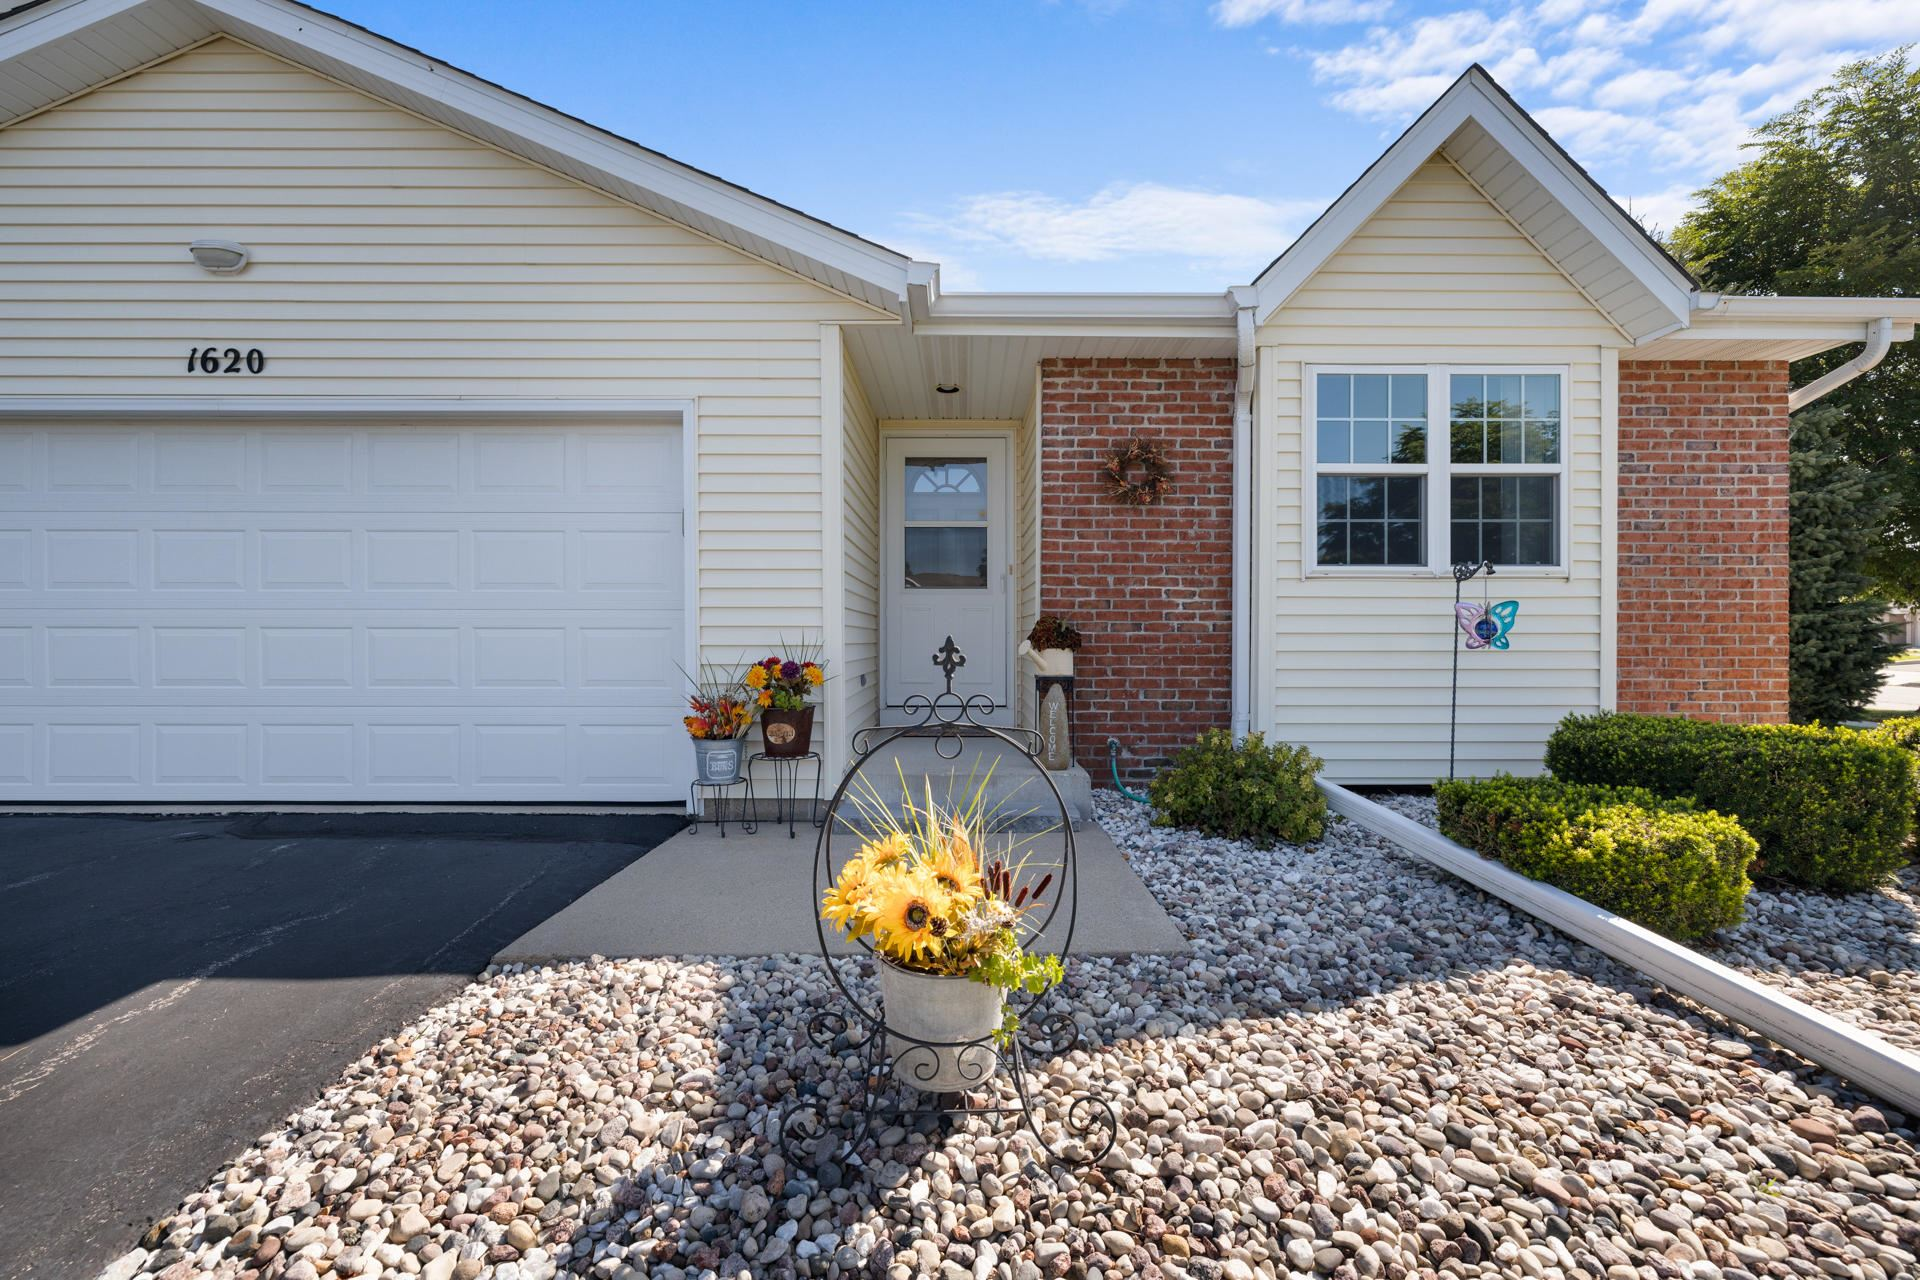 1620 Goldenrod Cir, West Bend, WI 53095 - #: 1703198